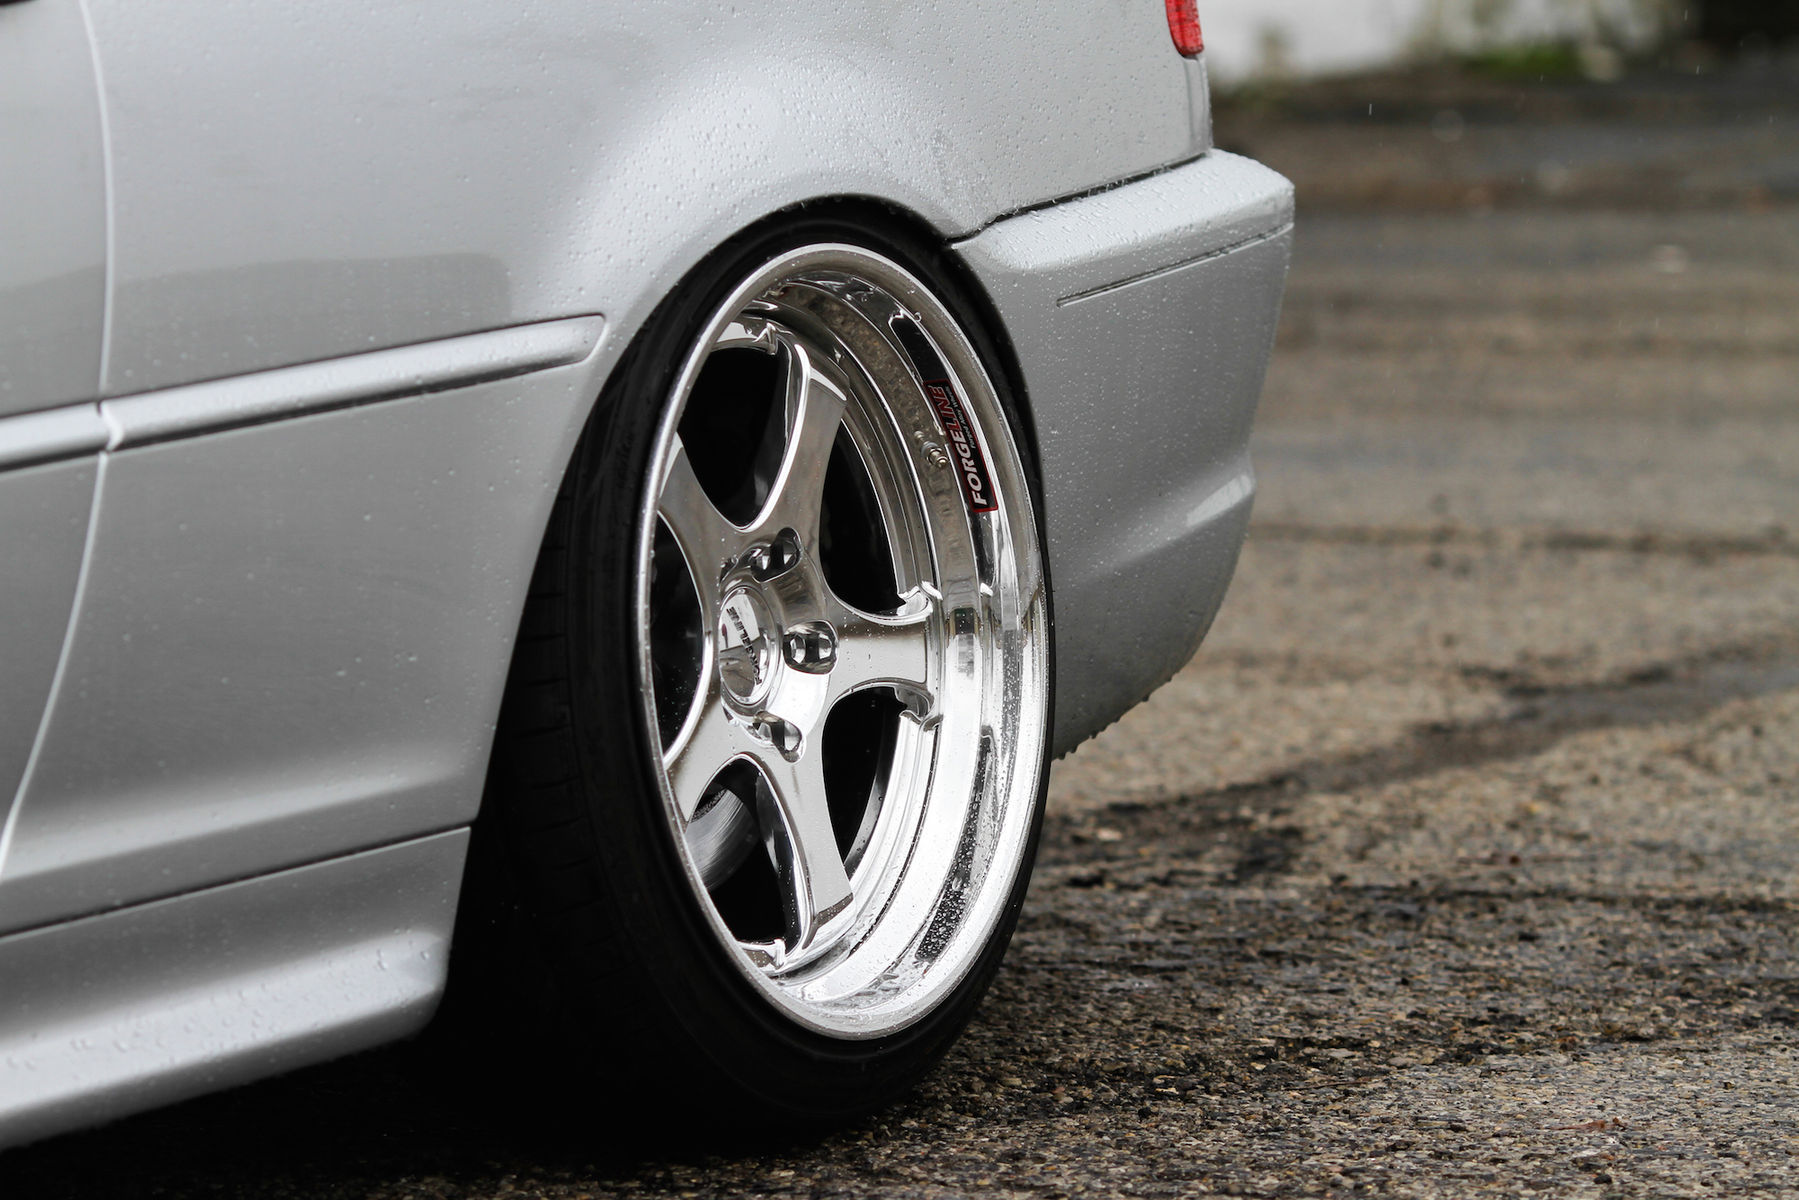 2006 BMW 3 Series | Jake's BMW e46 330ci on Forgeline RS3 Wheels